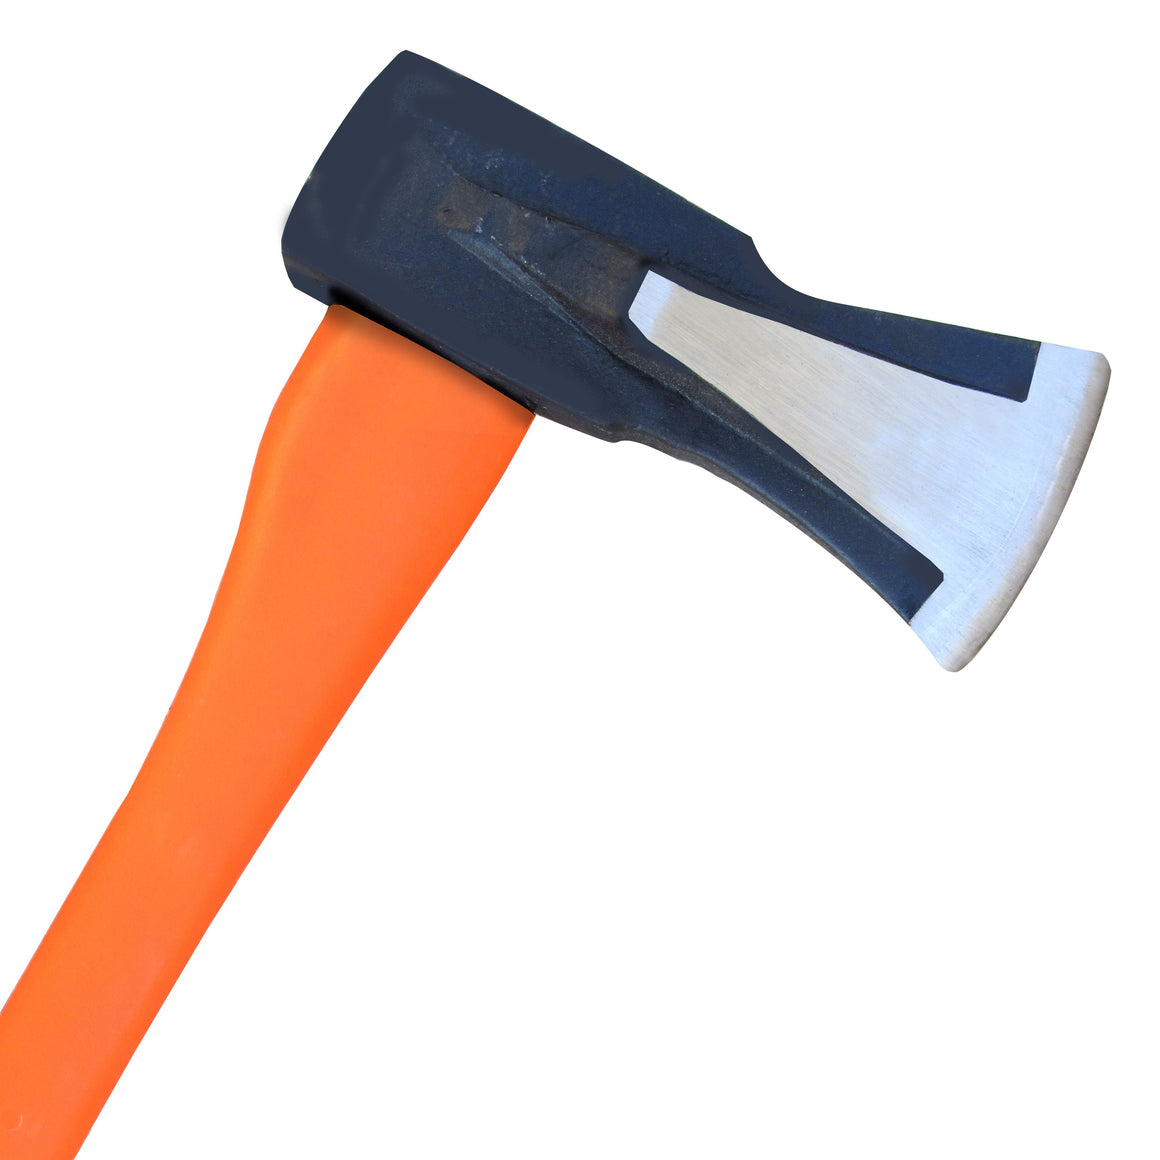 TABOR TOOLS Splitting Axe, 35 Inch with Fiberglass Handle (9 lb)